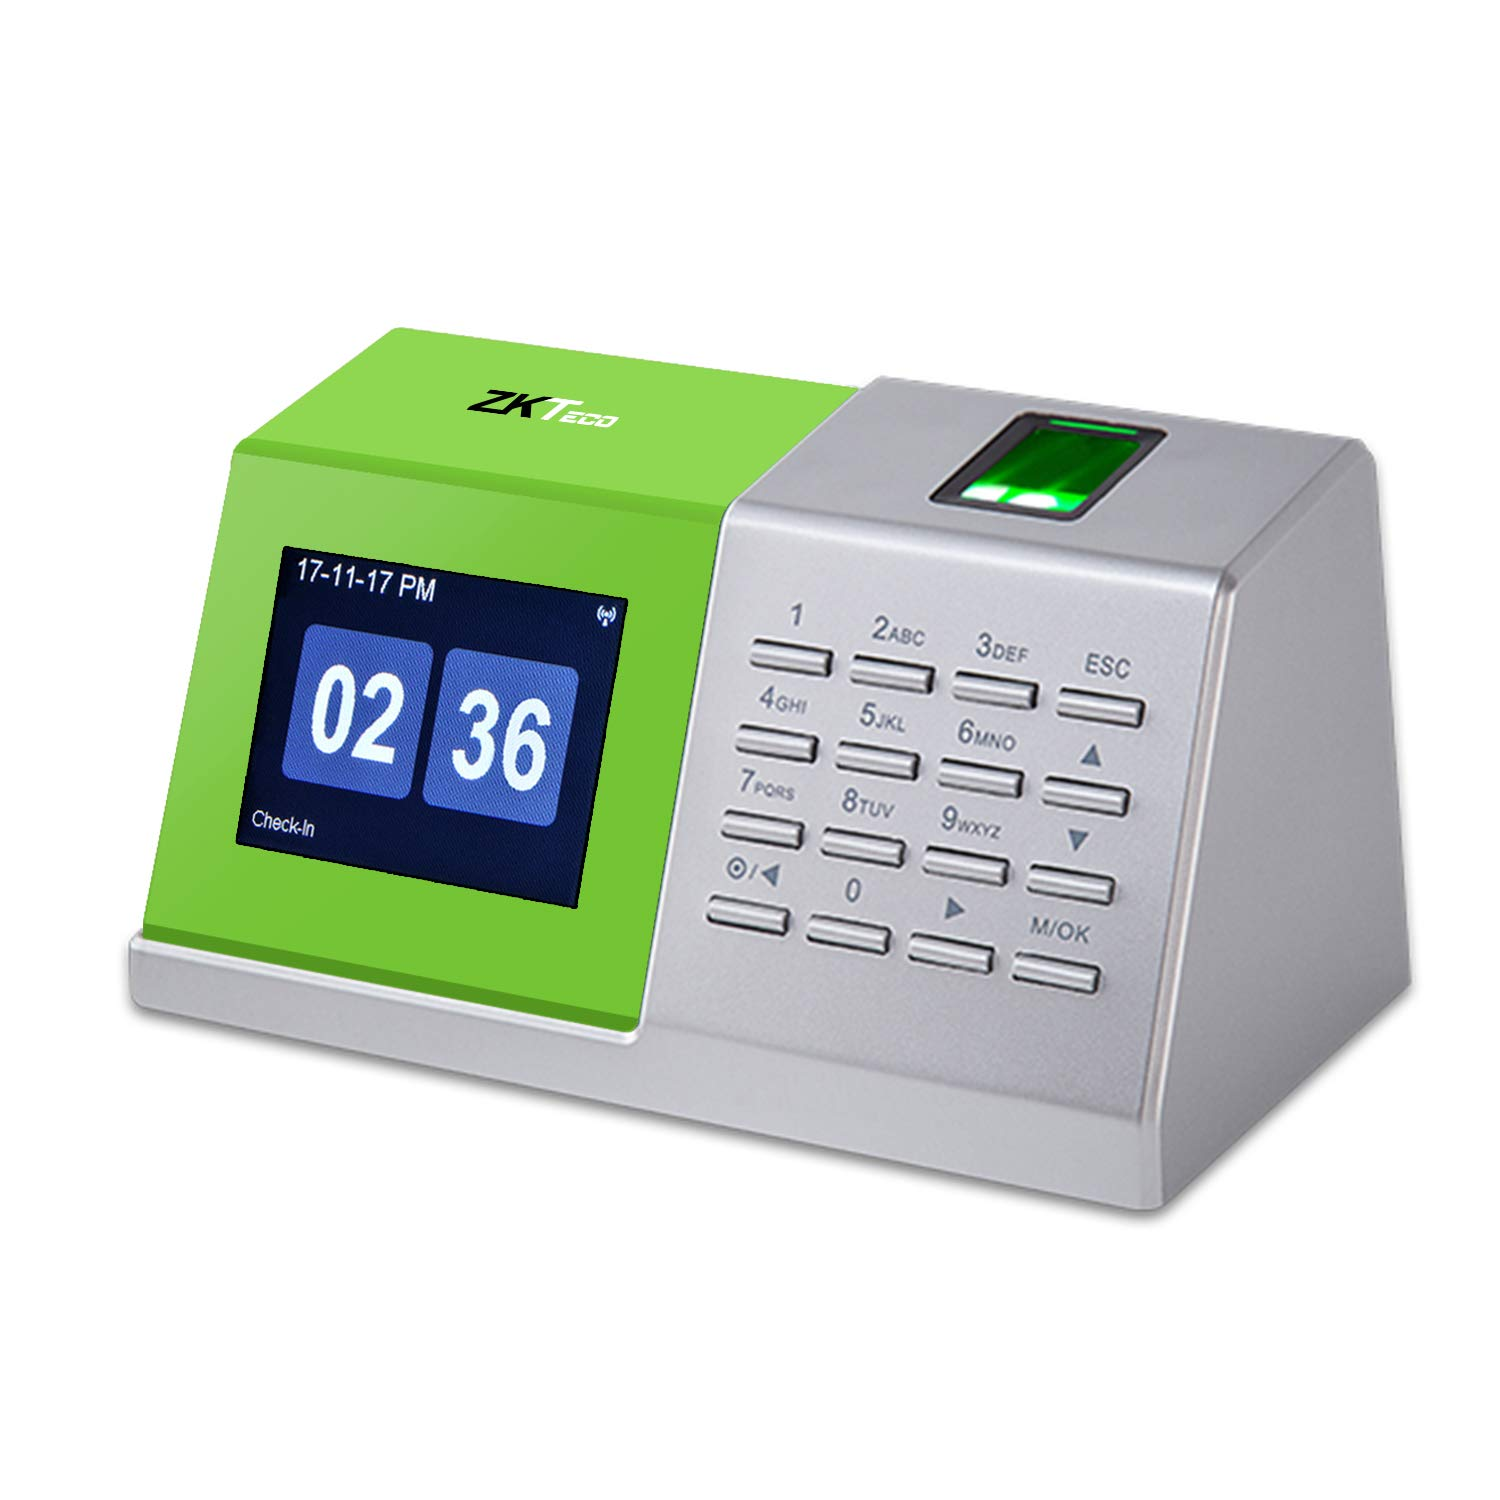 ZKTeco CT20 Fingerprint Time Attendance Machine Biometric Time Clock for Employee Small Business Time-Tracking Recorder Without Installation. by ZKTeco